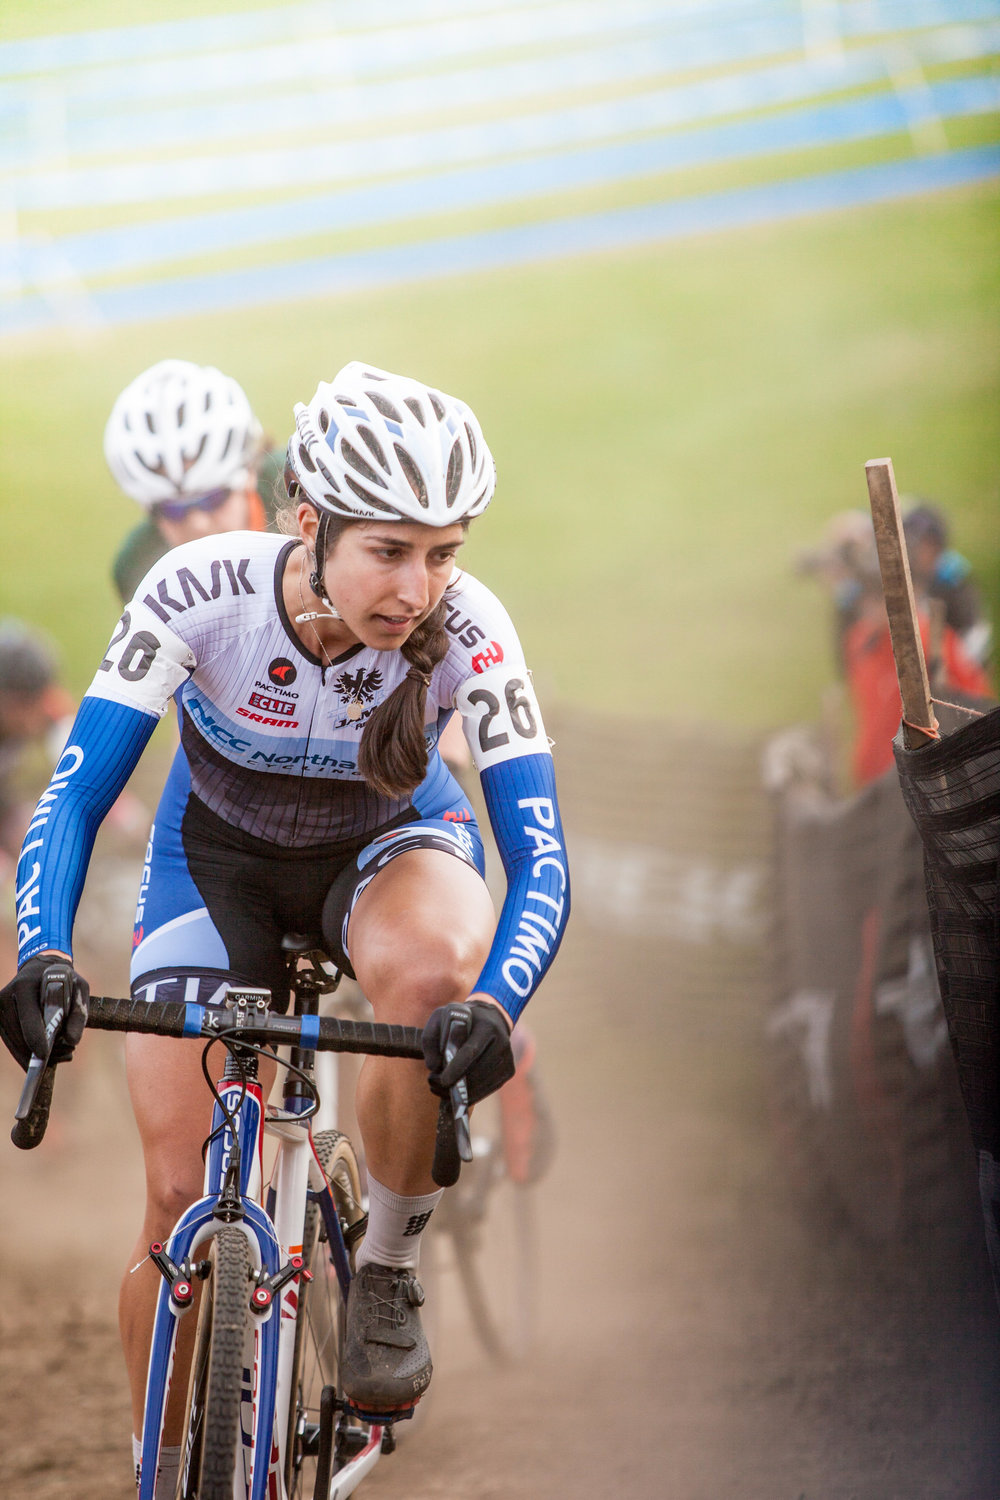 Natalie Tapias racing at the  Gran Prix of Gloucester 2015